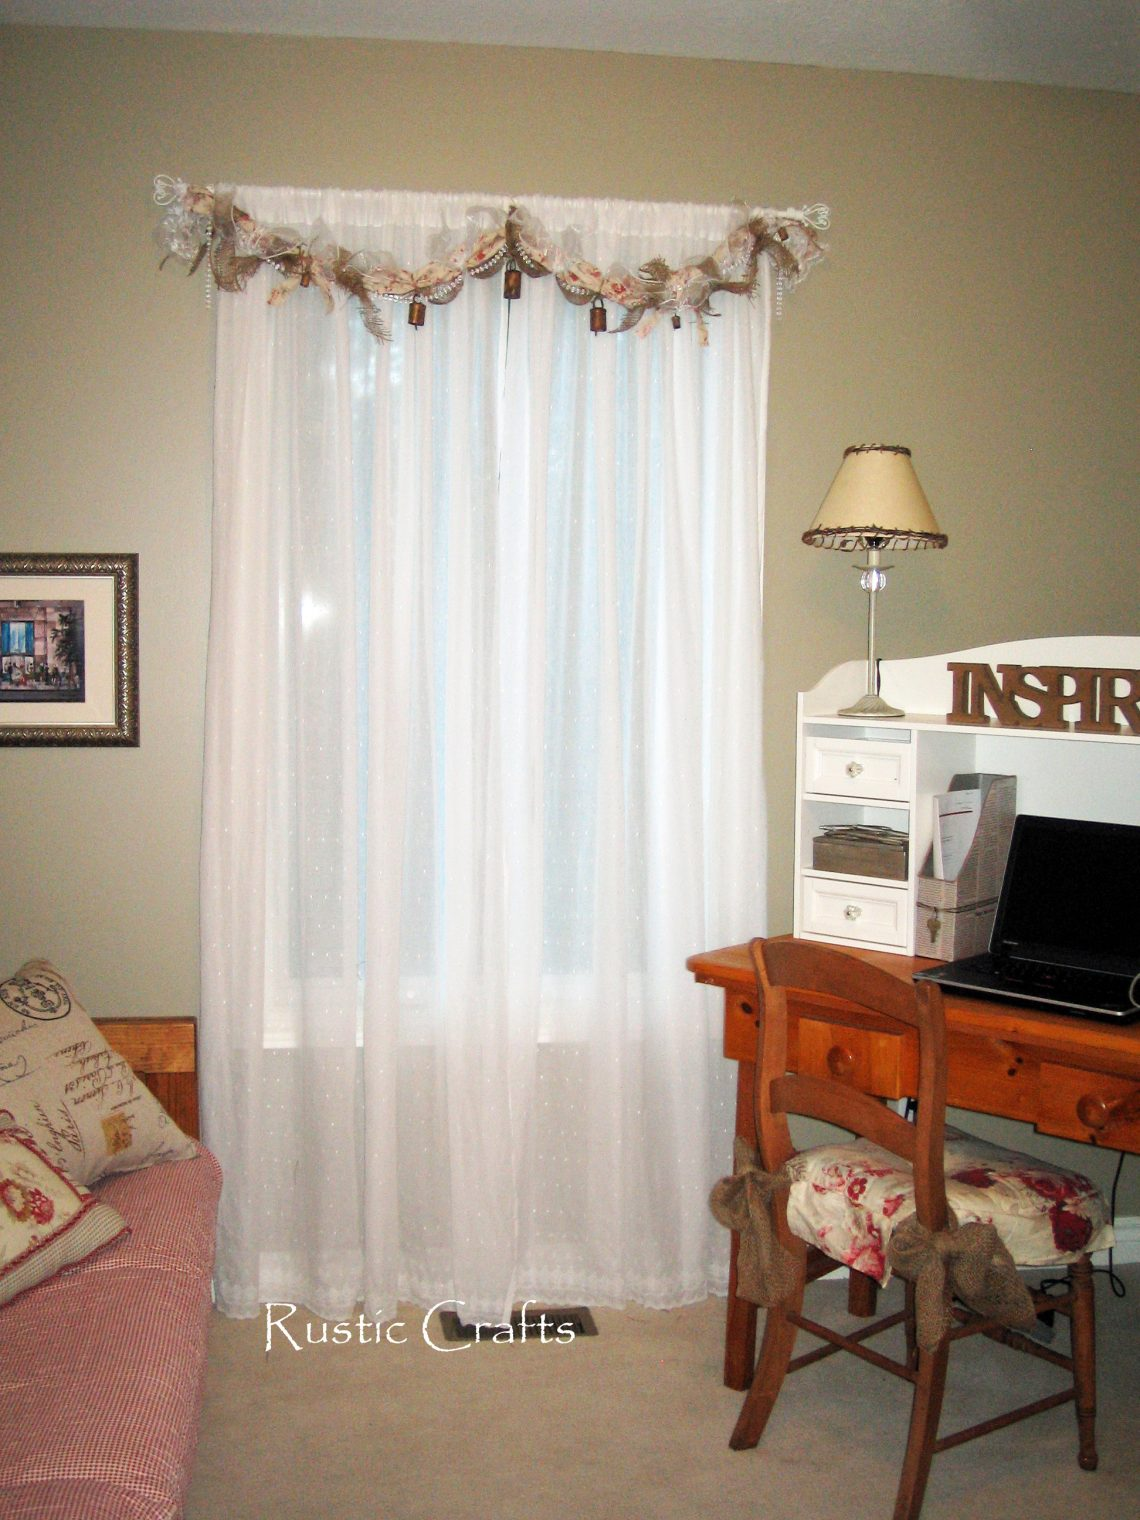 How To Make A Rag Swag Window Treatment